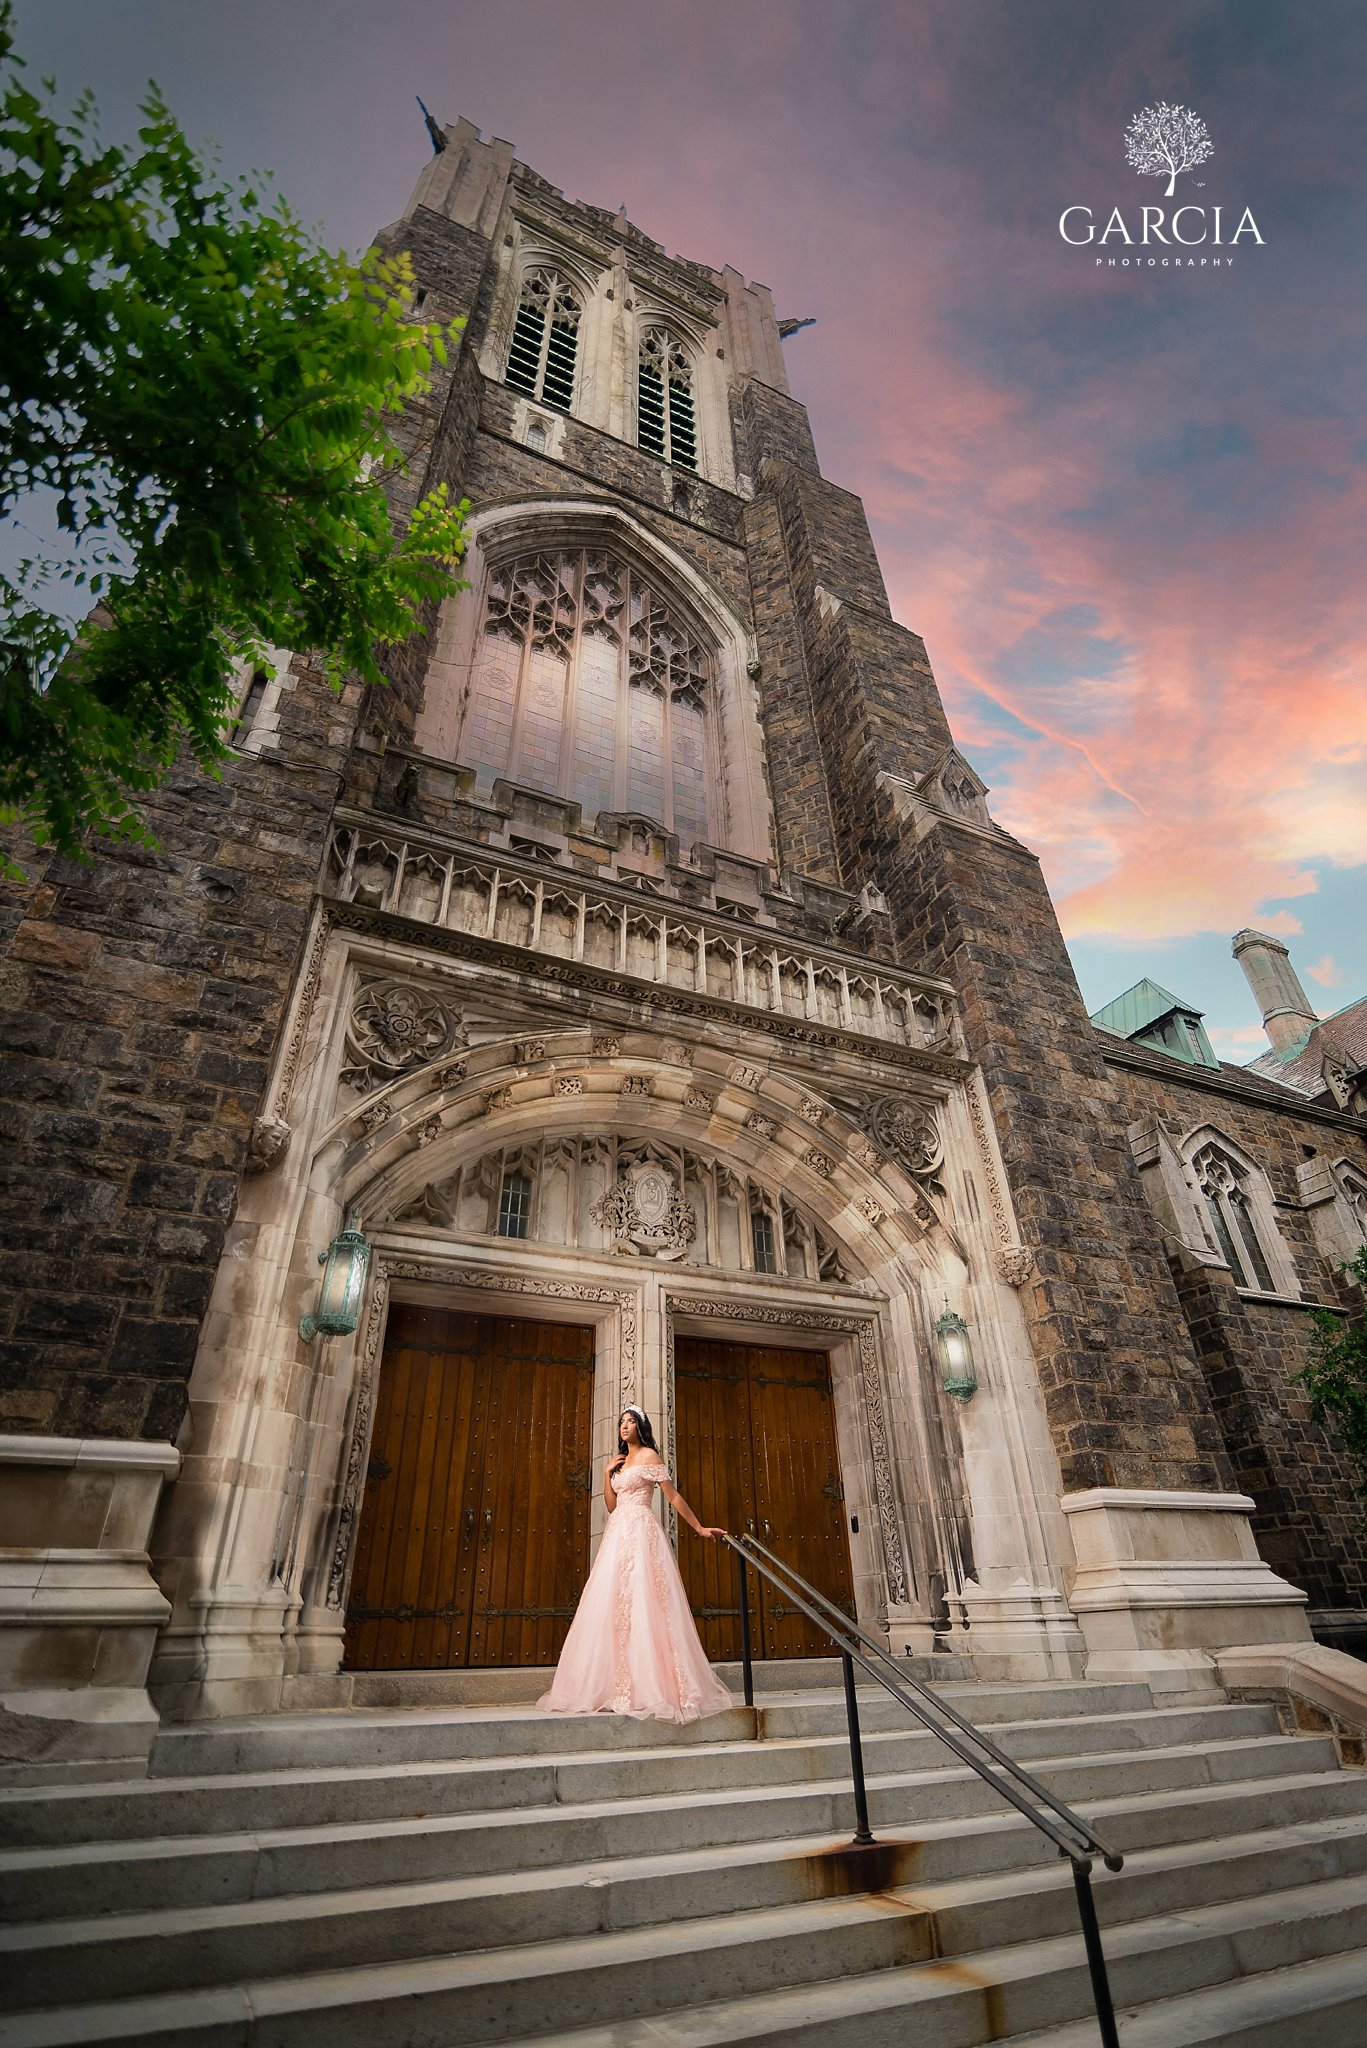 Emily-Quince-Session-Garcia-Photography-4656.jpg